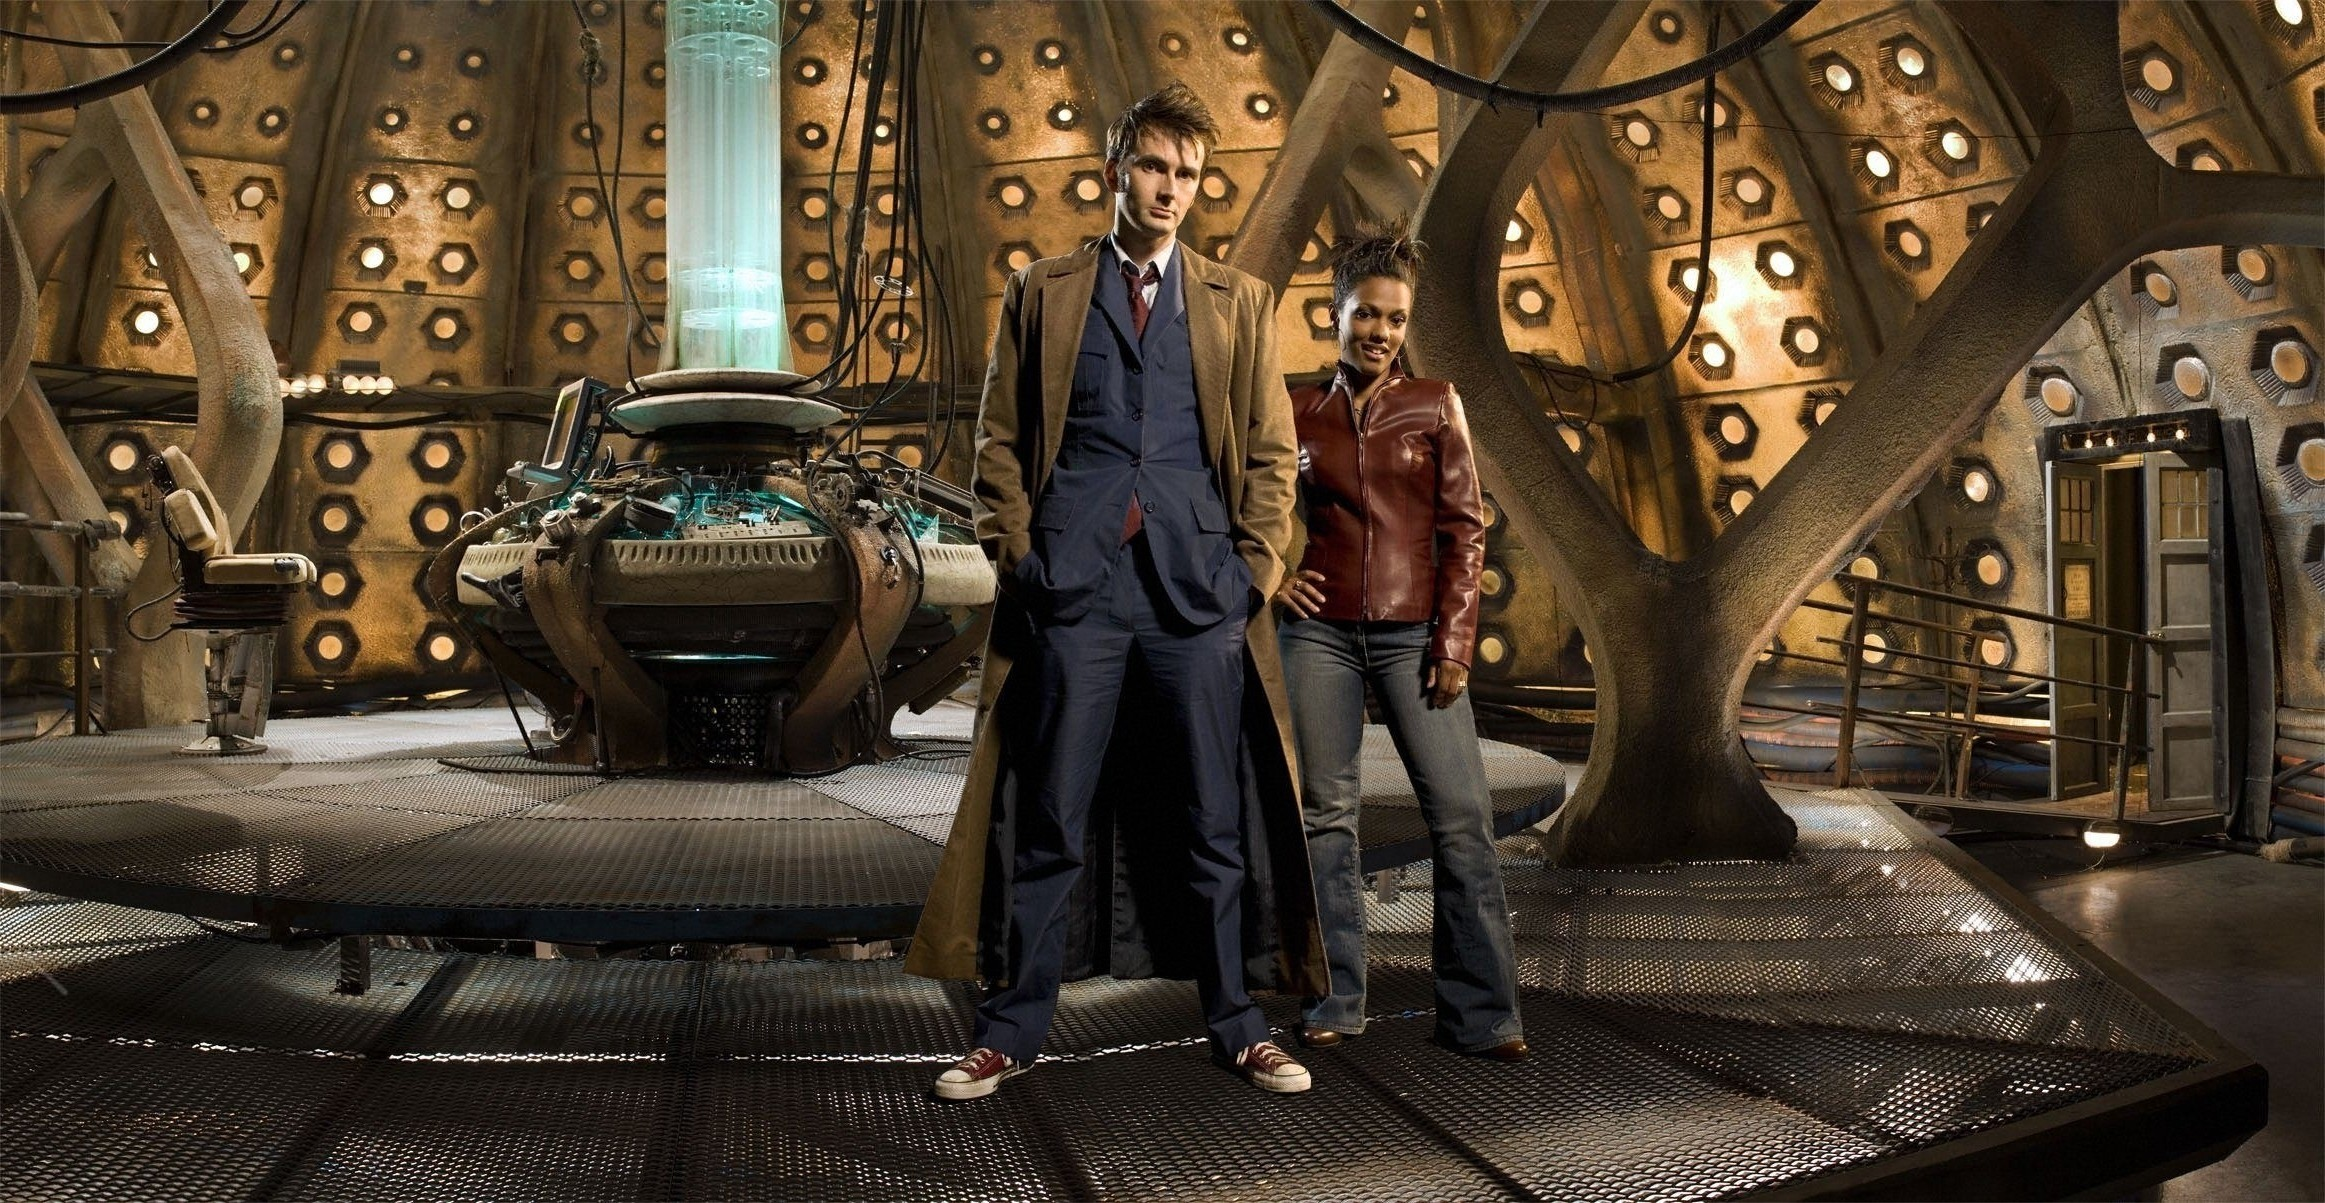 Doctor Who, The Doctor, TARDIS, David Tennant, Freema Agyeman, Tenth Doctor  Wallpapers HD / Desktop and Mobile Backgrounds